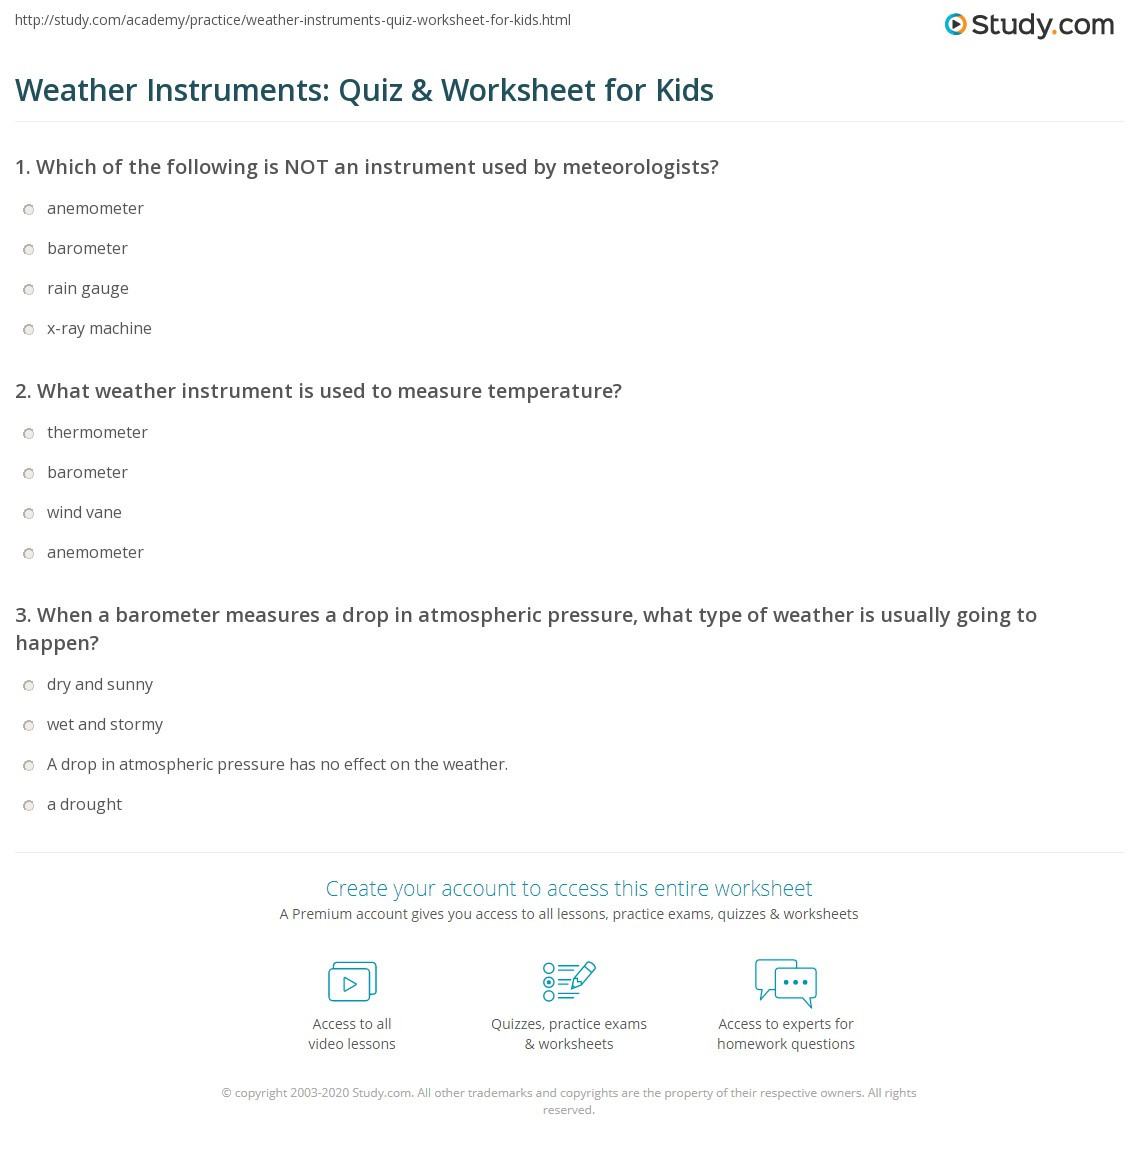 Free Printable Weather Instruments Worksheets Weather Instruments Quiz & Worksheet for Kids